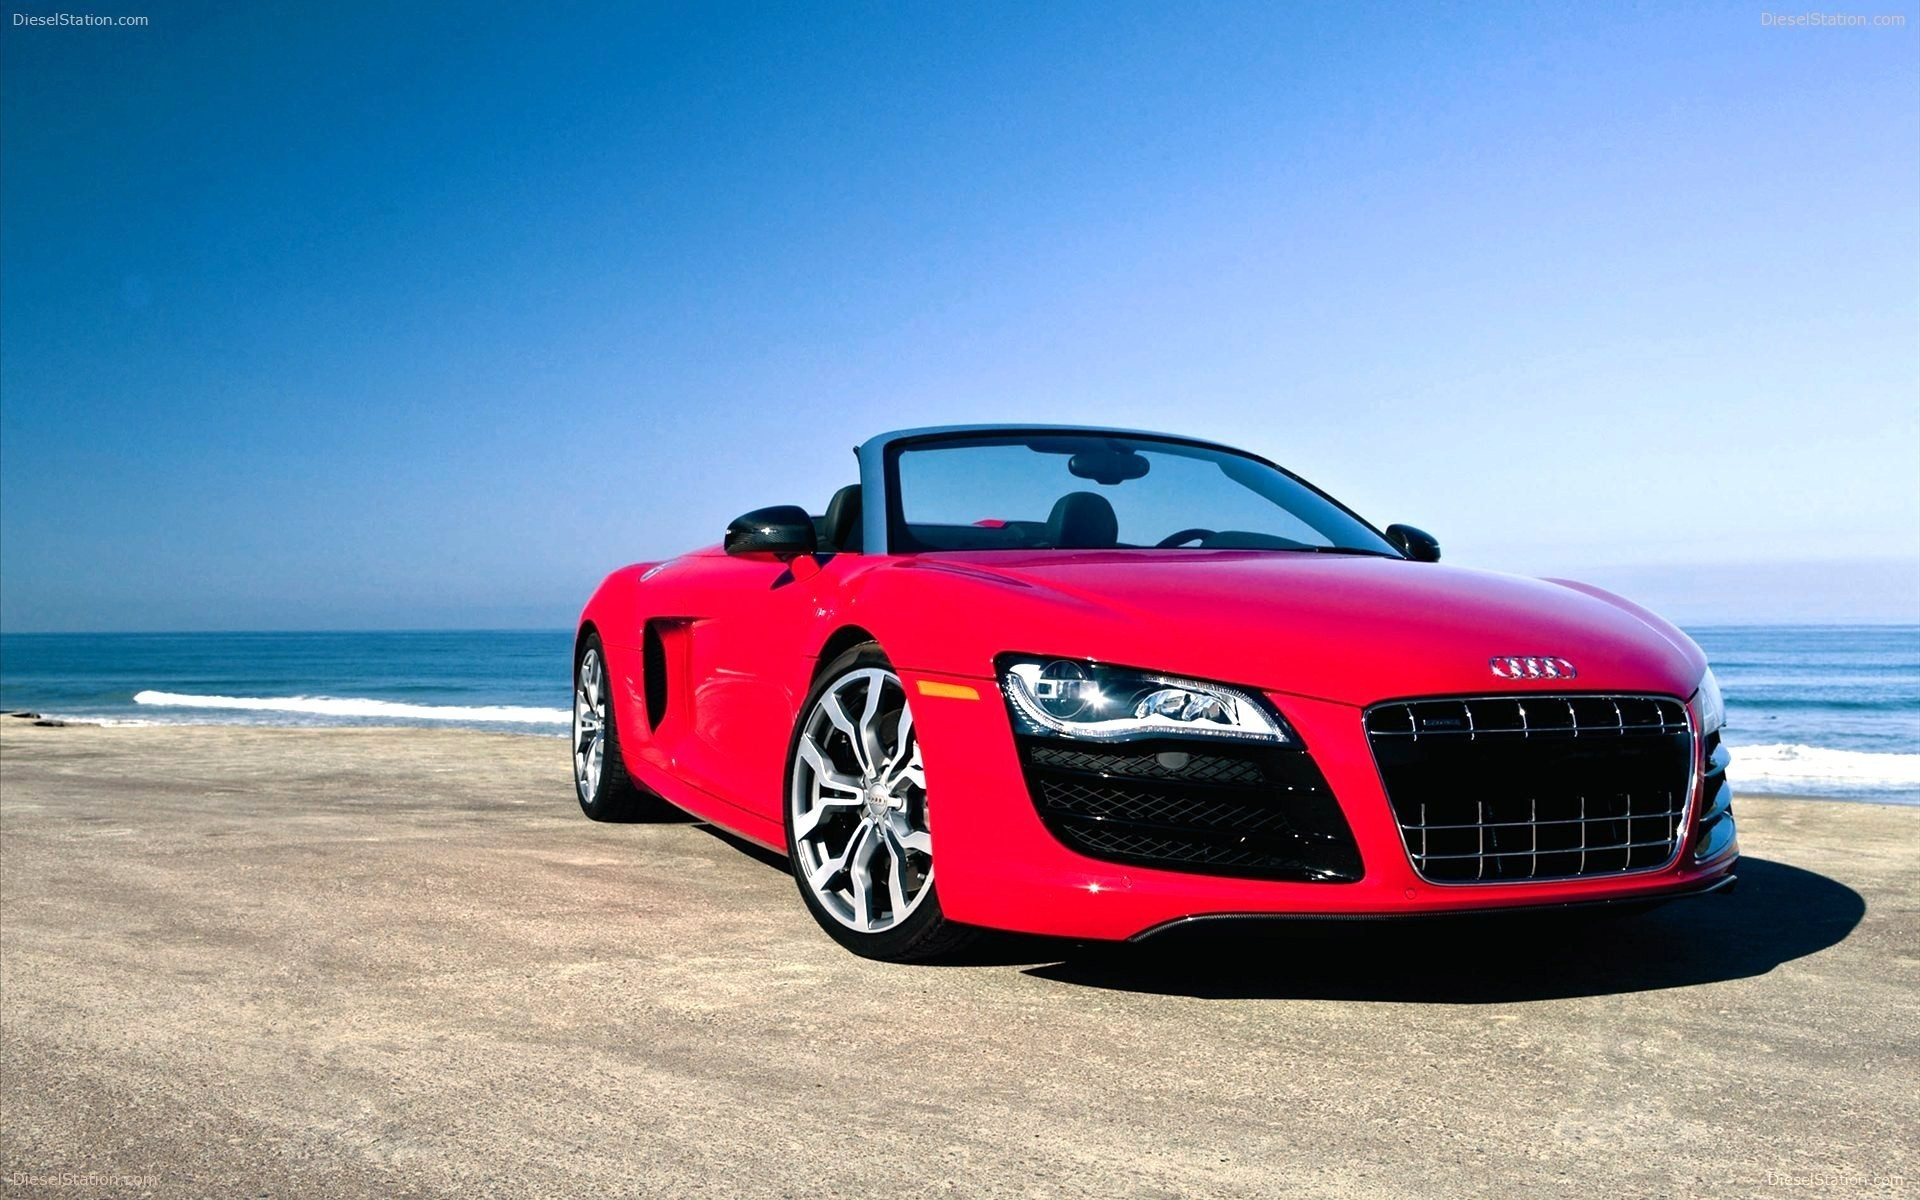 1920x1200 Red Audi R8 GT in Beach Car Wallpapers